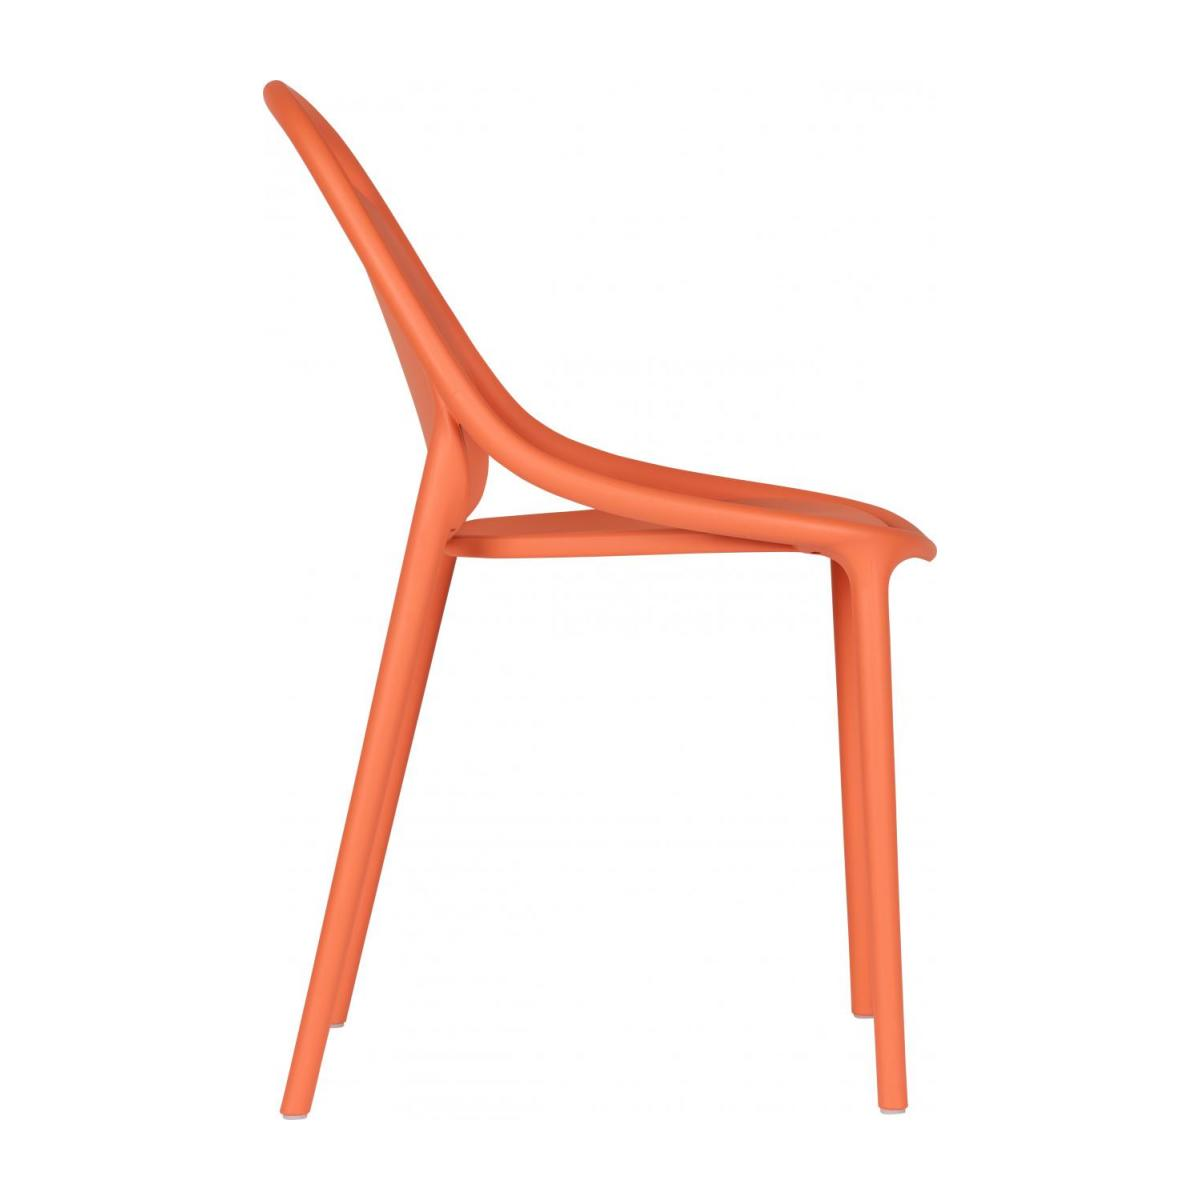 Chaise orange en polypropylène n°4